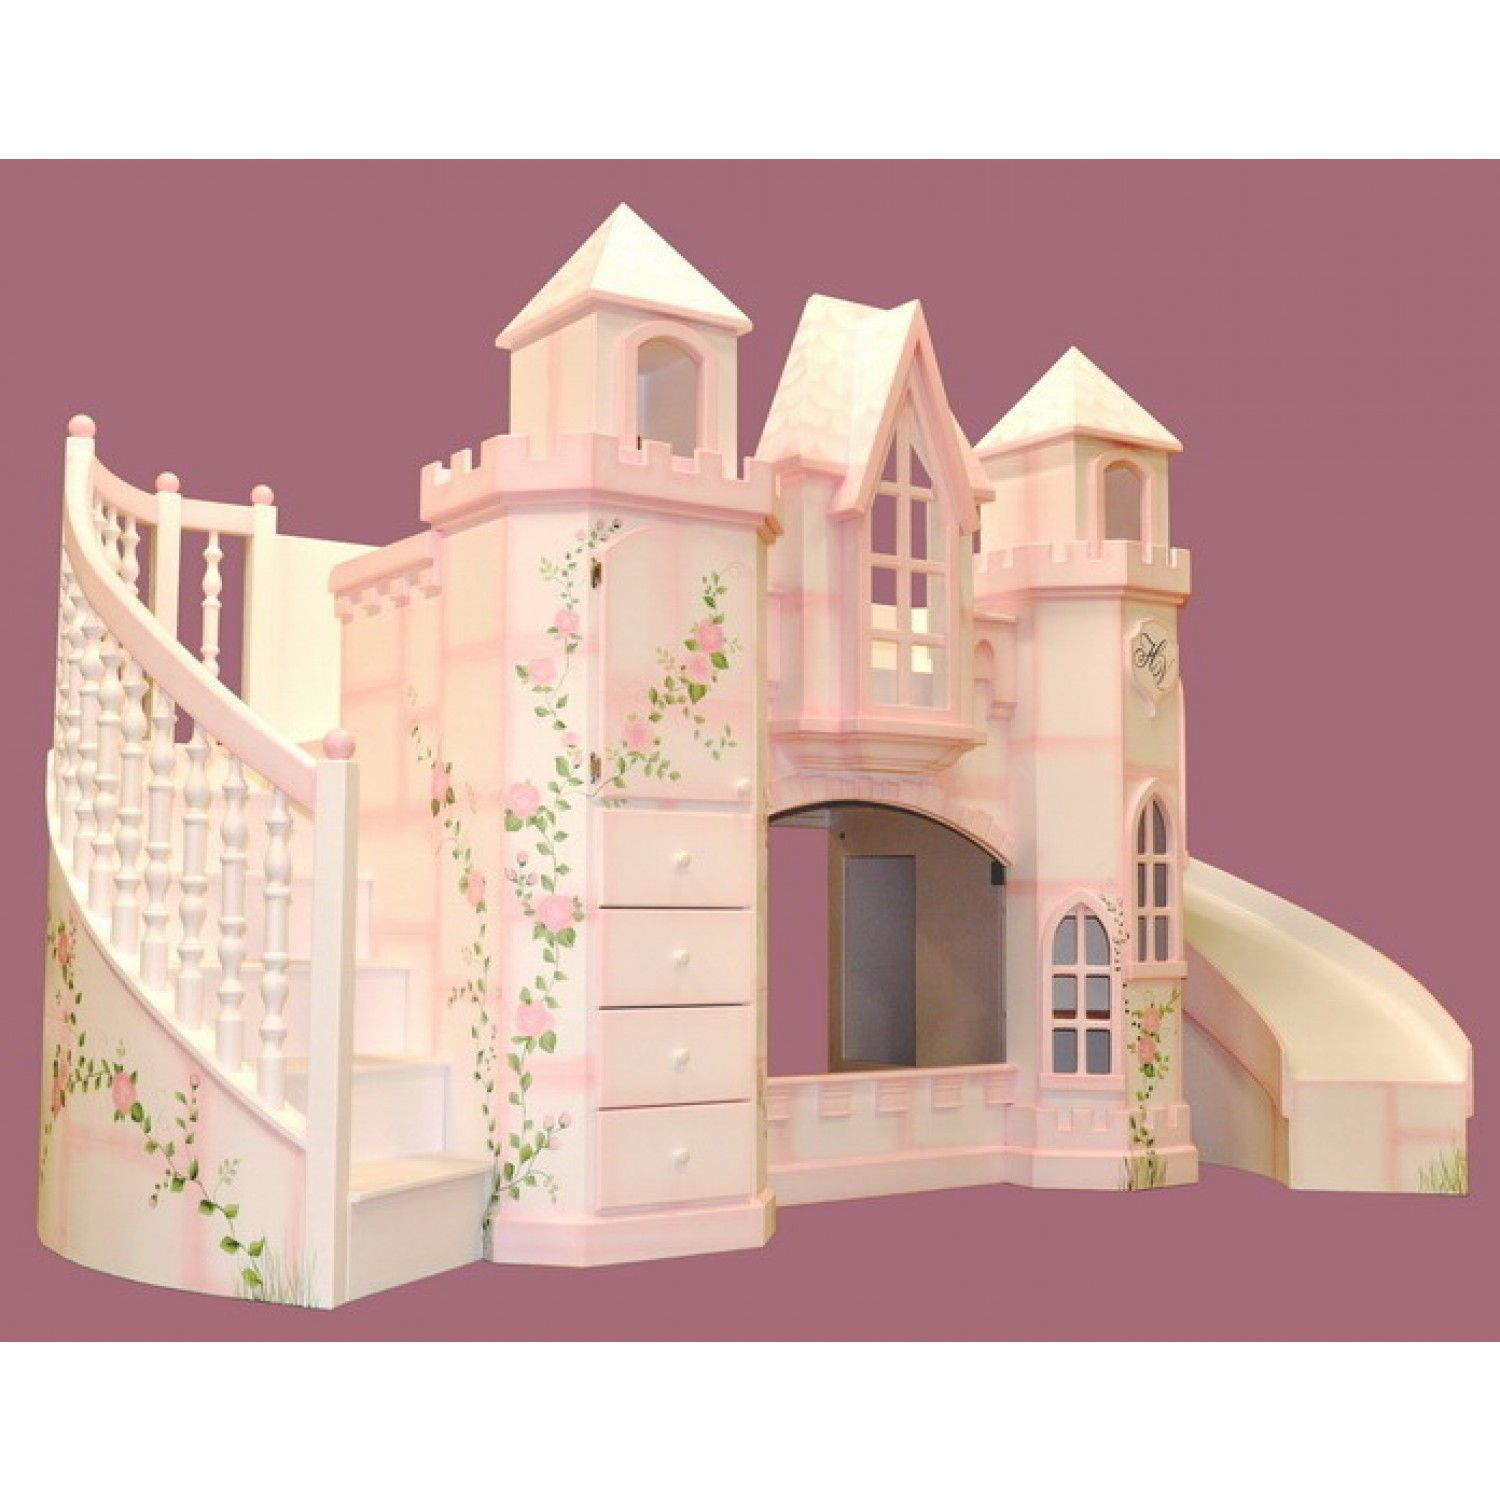 Bedroom furniture for girls castle - Vintage Trailer Loft Bed And Luxury Kid Furnishings Including Armoires In Childs Furniture